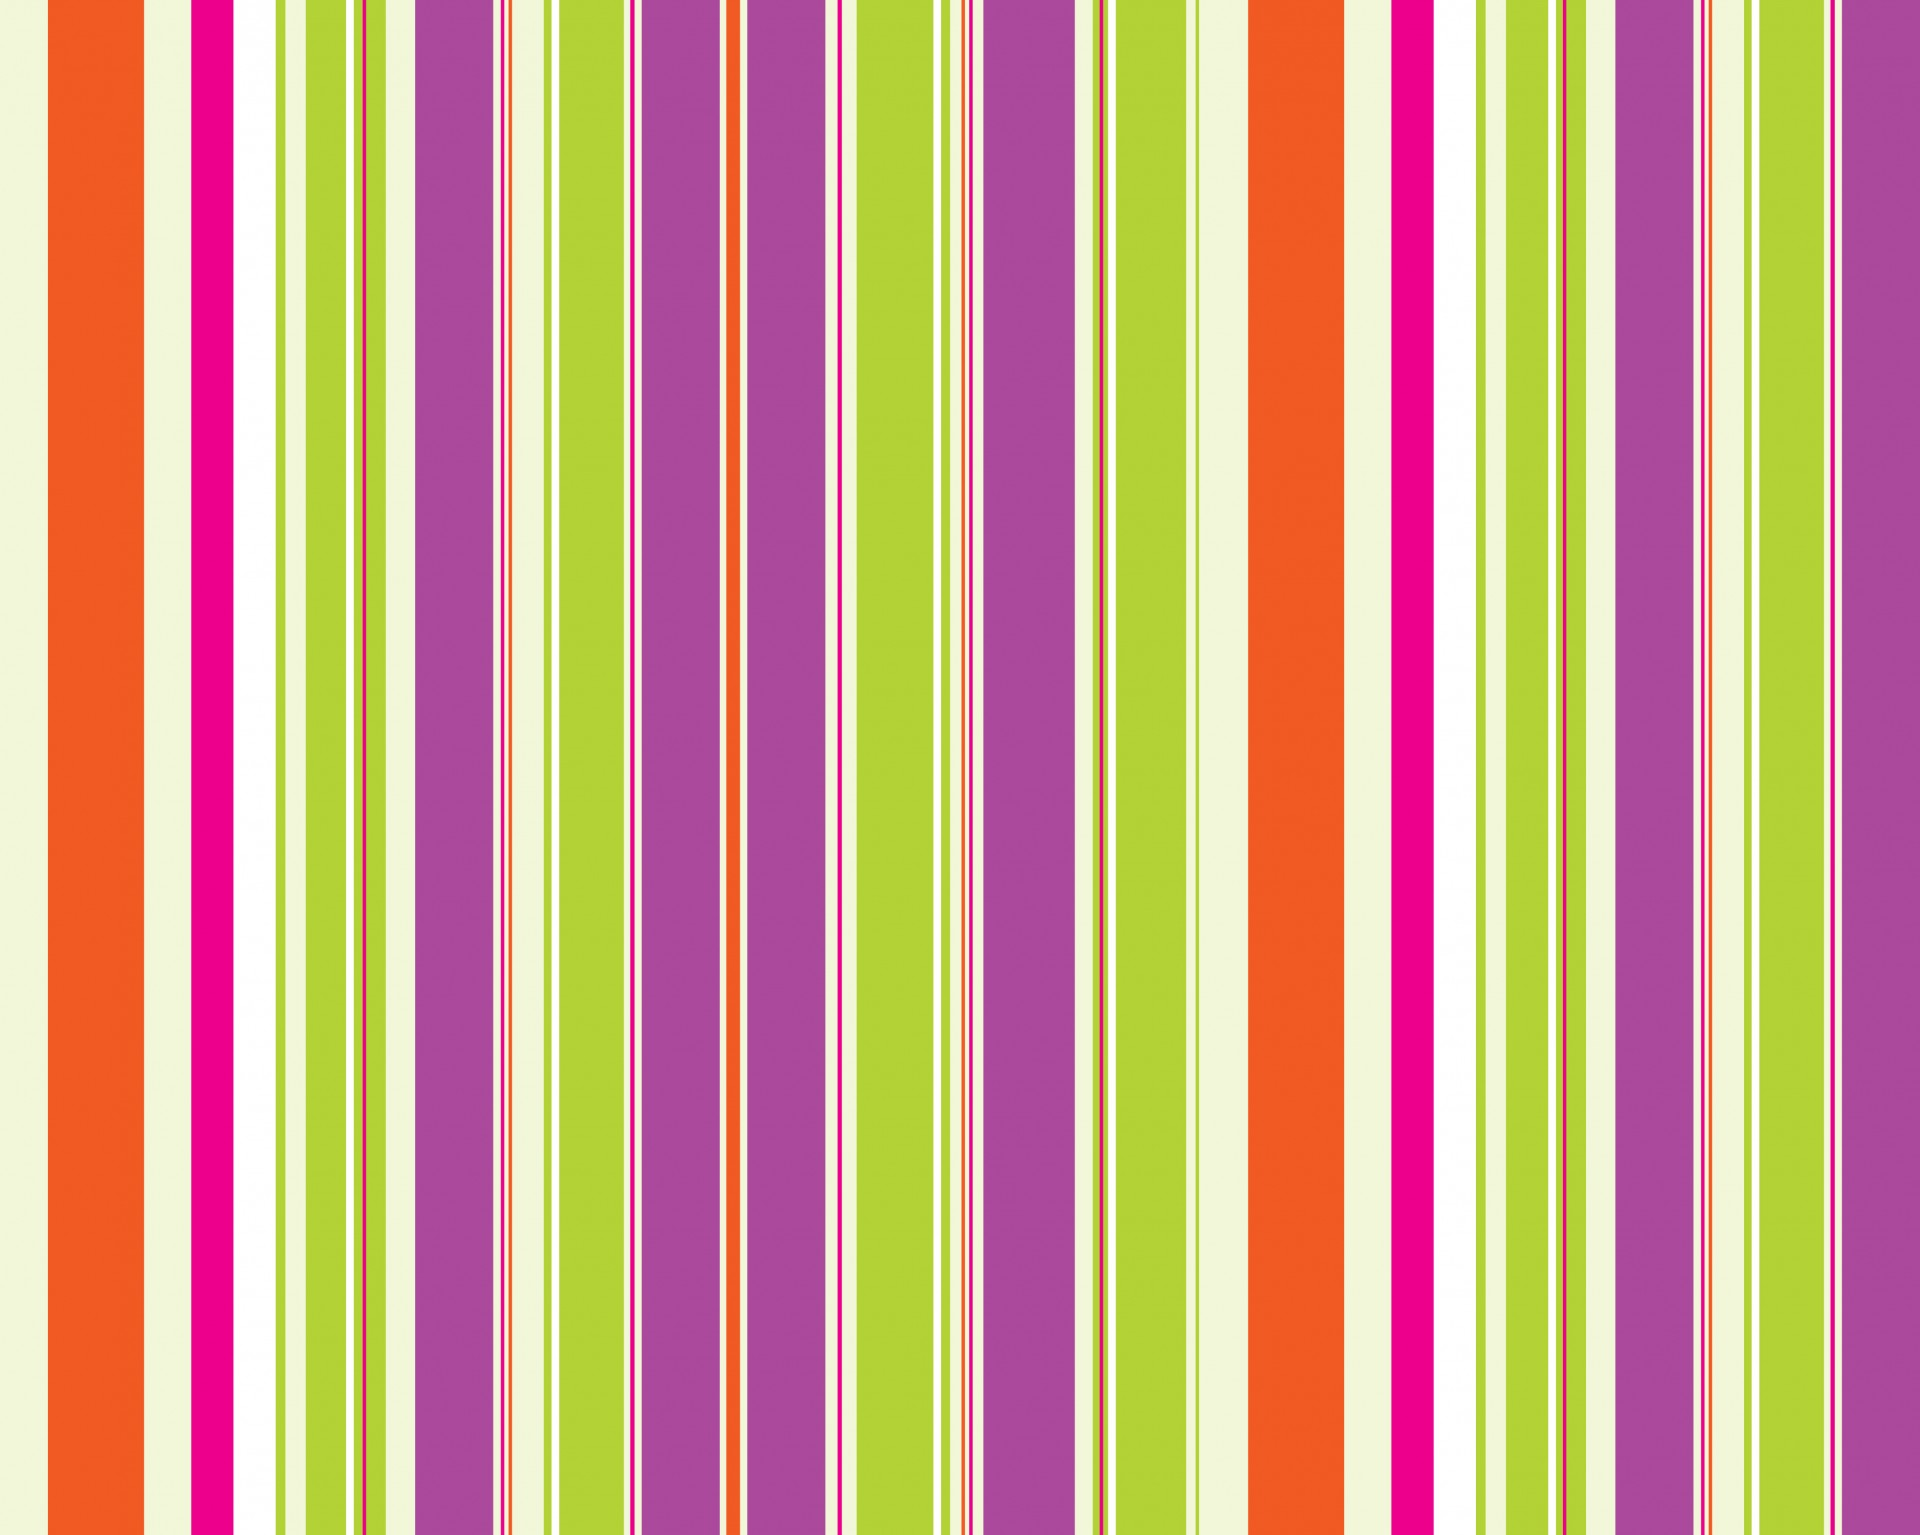 Purple Iphone 5 Wallpaper Stripes Colorful Background Free Stock Photo Public